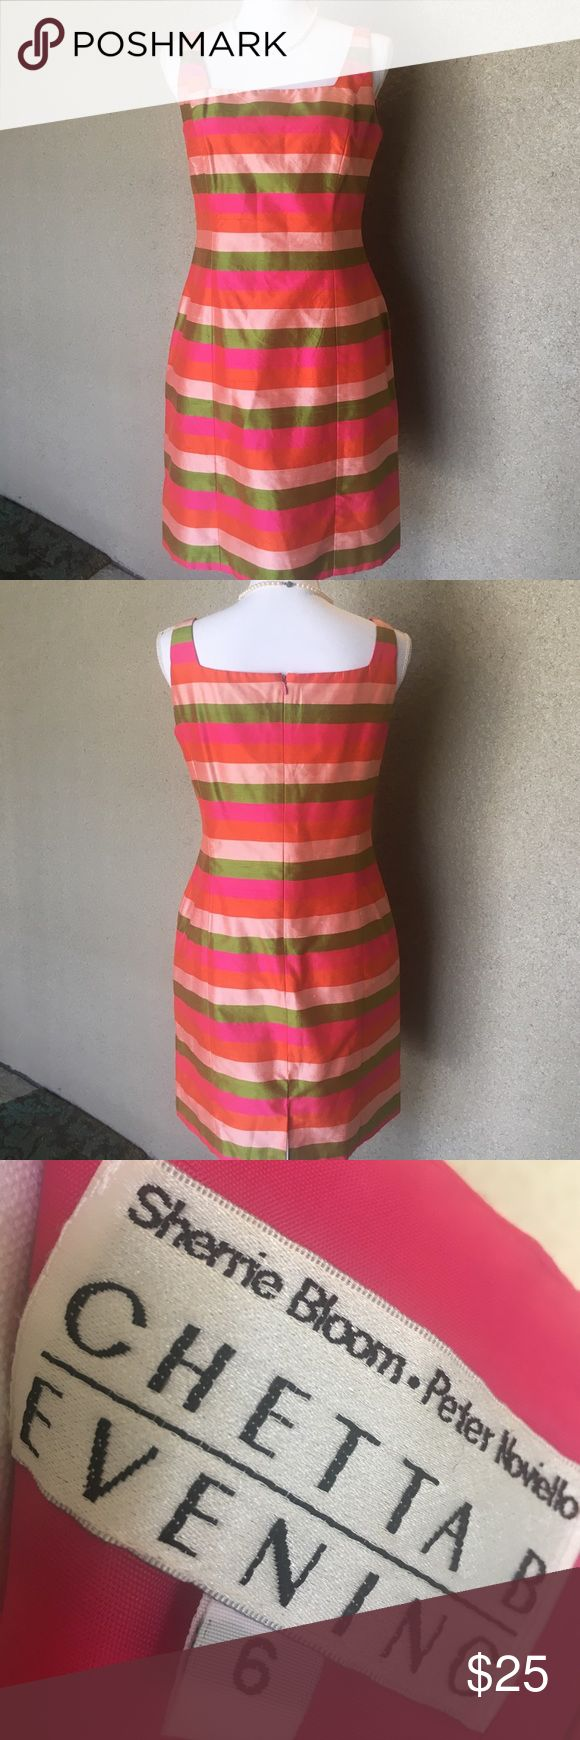 CHETTA B EVENING DRESS Striped silk shantung dress in multi-sorbet colors. Fully lined, hidden zipper in back with hook & eye closure. The seam was loose under armpit that I mended-see pic.✨guc✨ Cheta B Evening Dresses Midi